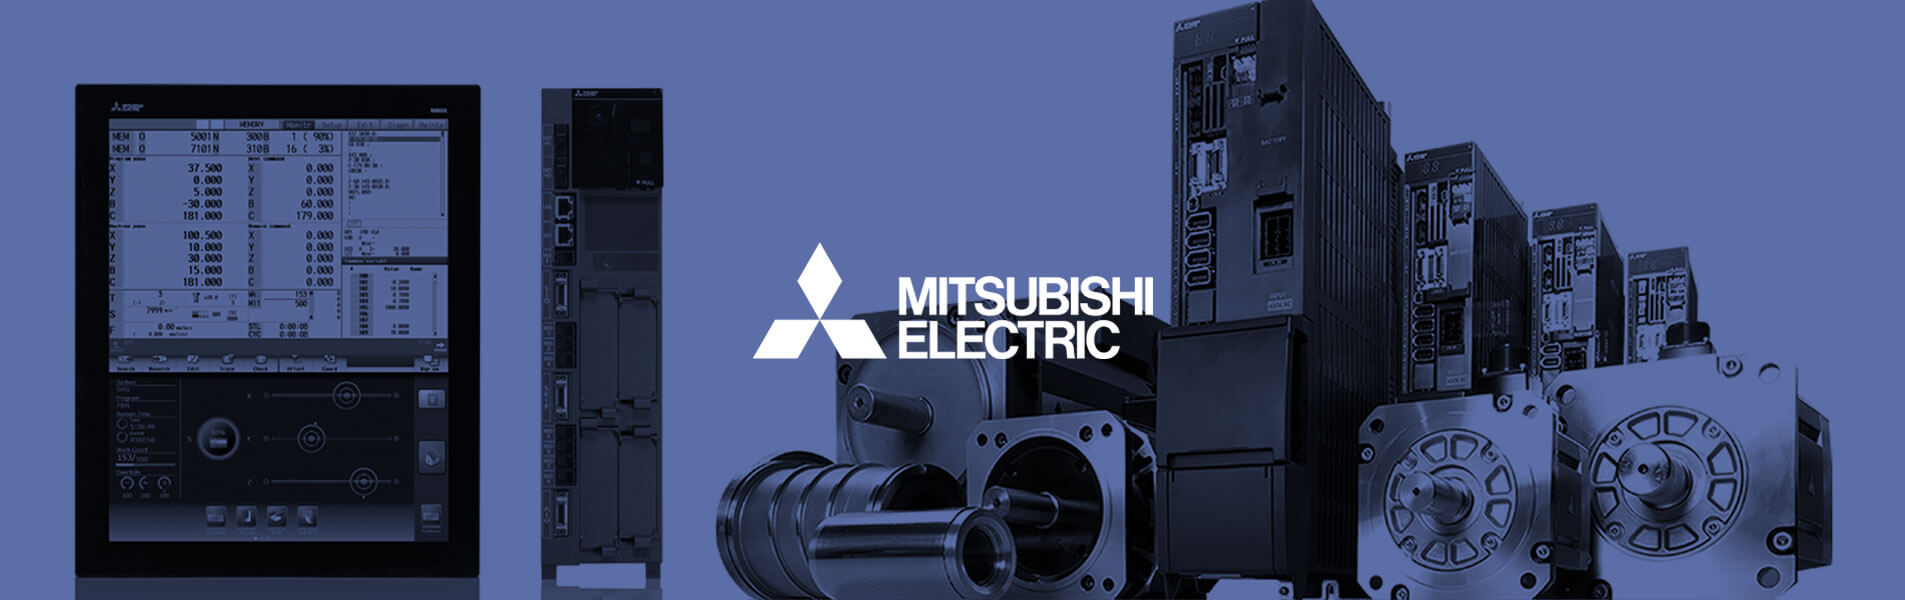 Mitsubishi variable frequency drives : FR-A800 Series